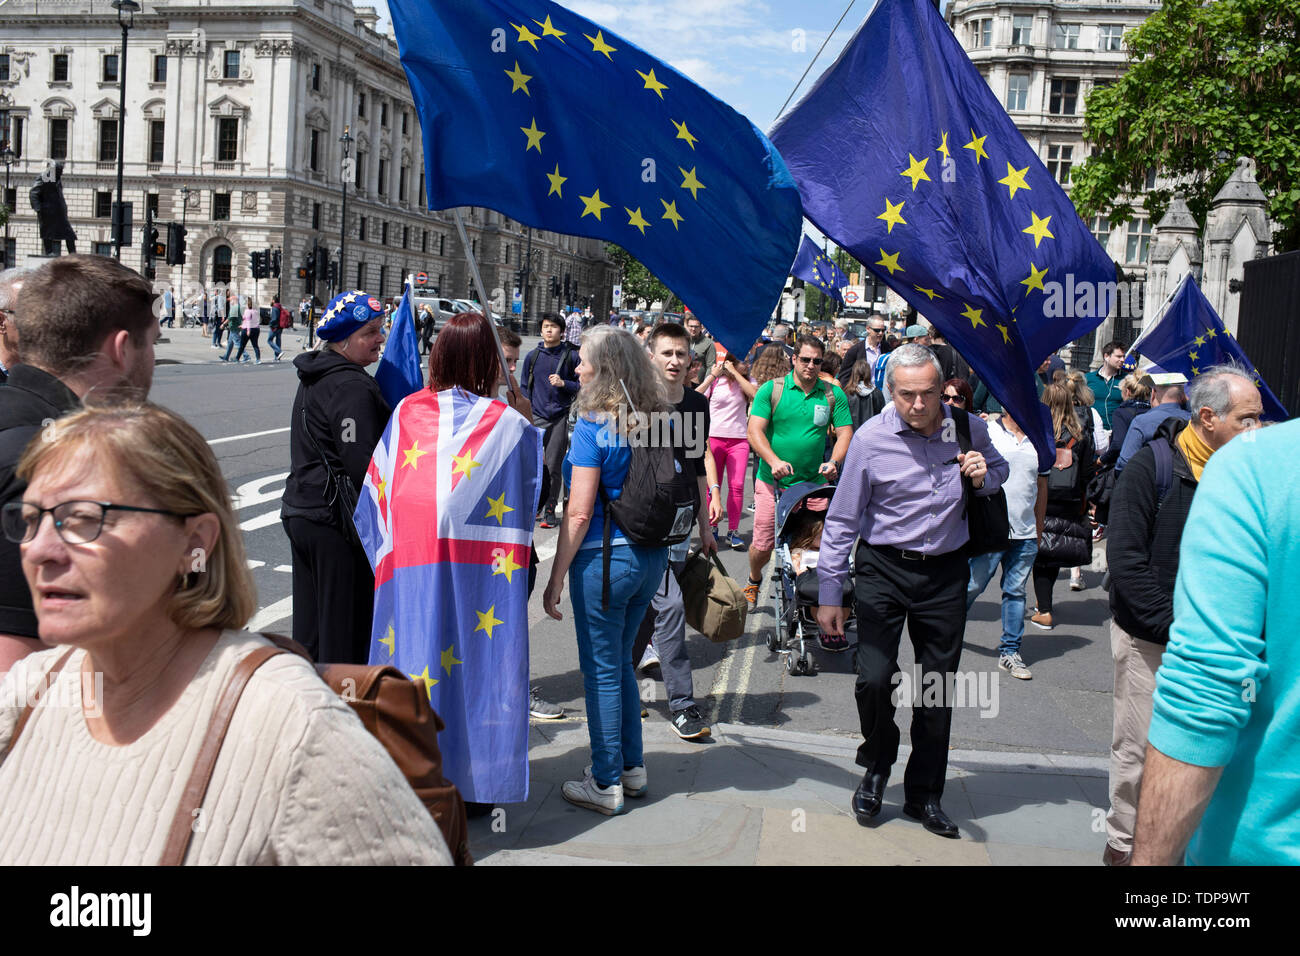 Anti Brexit protesters waving European Union flags in Westminster as inside Parliament the Tory leadership race continues on 17th June 2019 in London, England, United Kingdom. - Stock Image